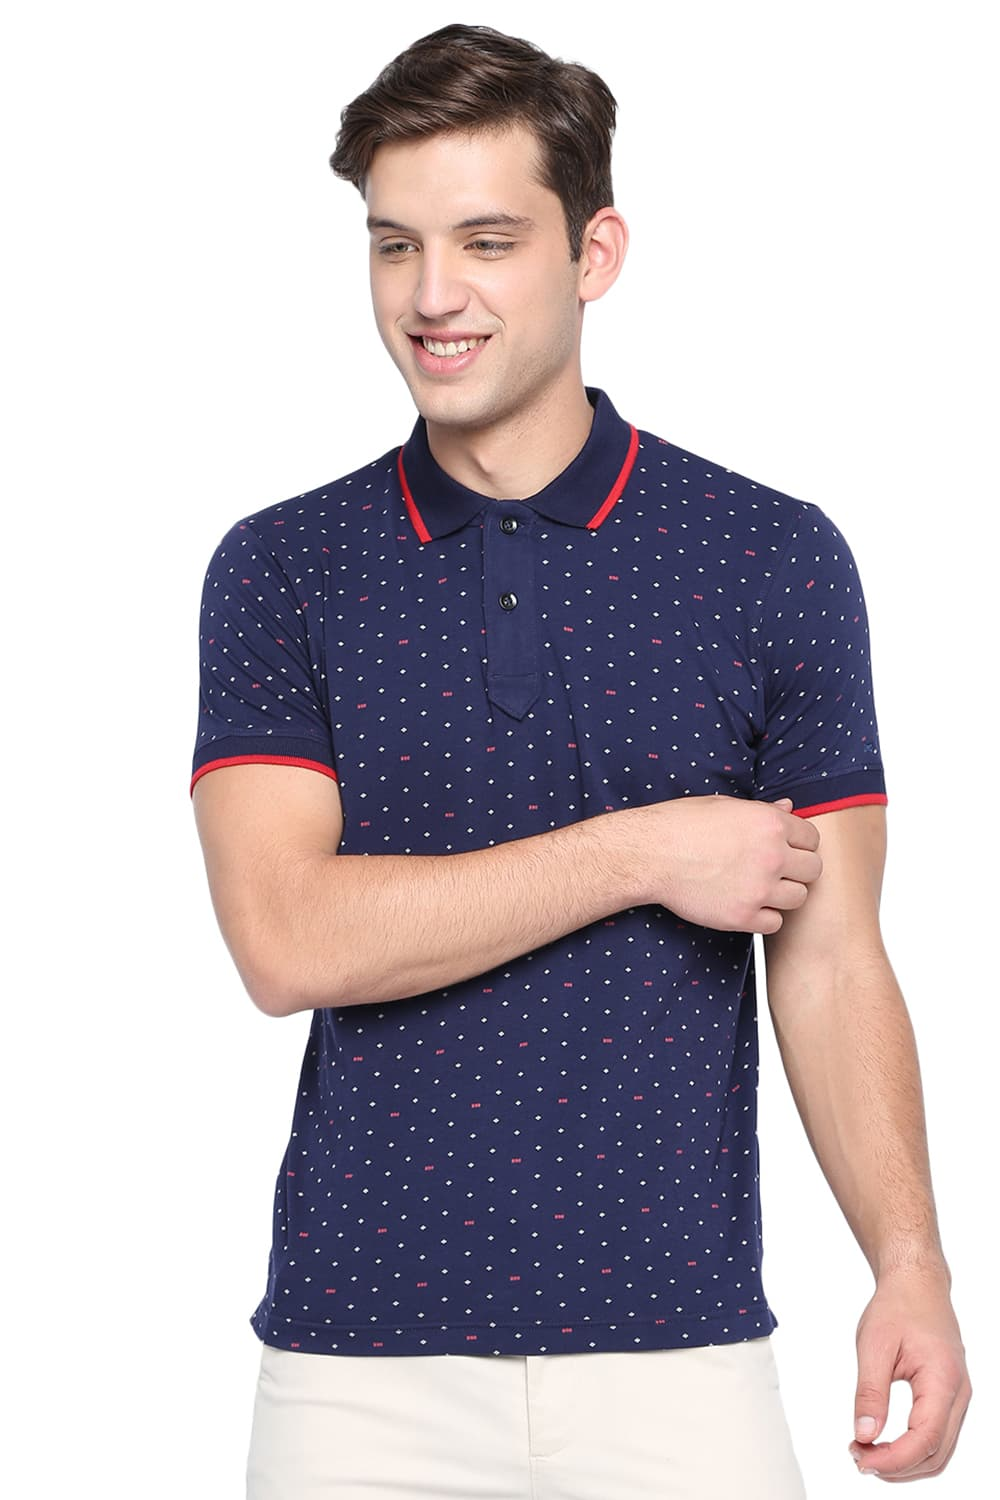 87480100a451 Basics Muscle Fit Eclipse Navy Print Polo T Shirt-19bts40886